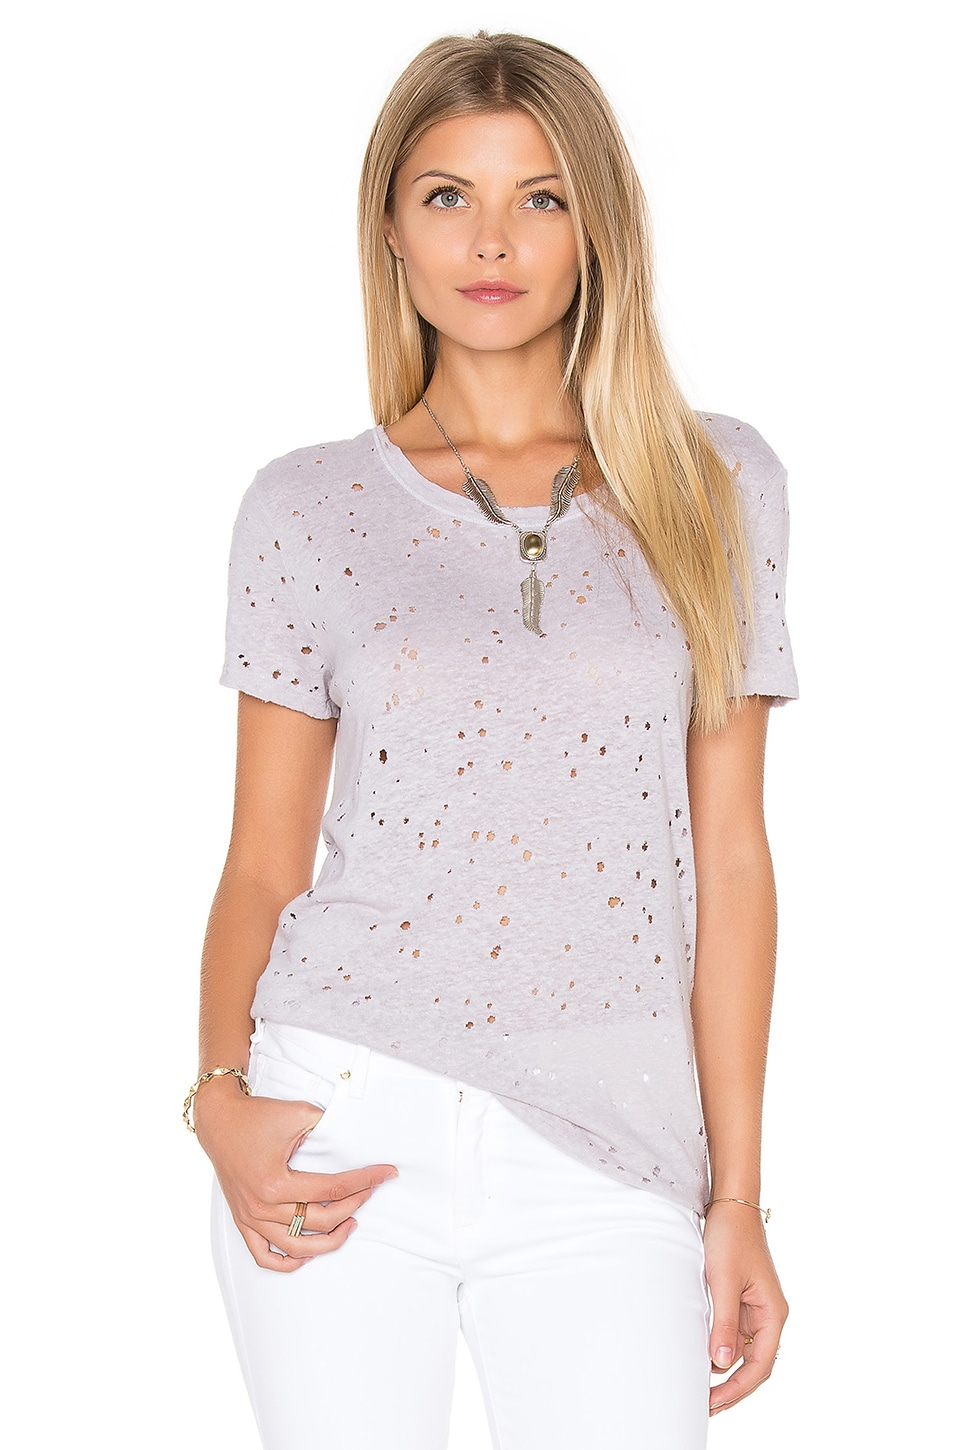 Ripped Texture Jersey Short Sleeve Crew Tee by Michael Stars